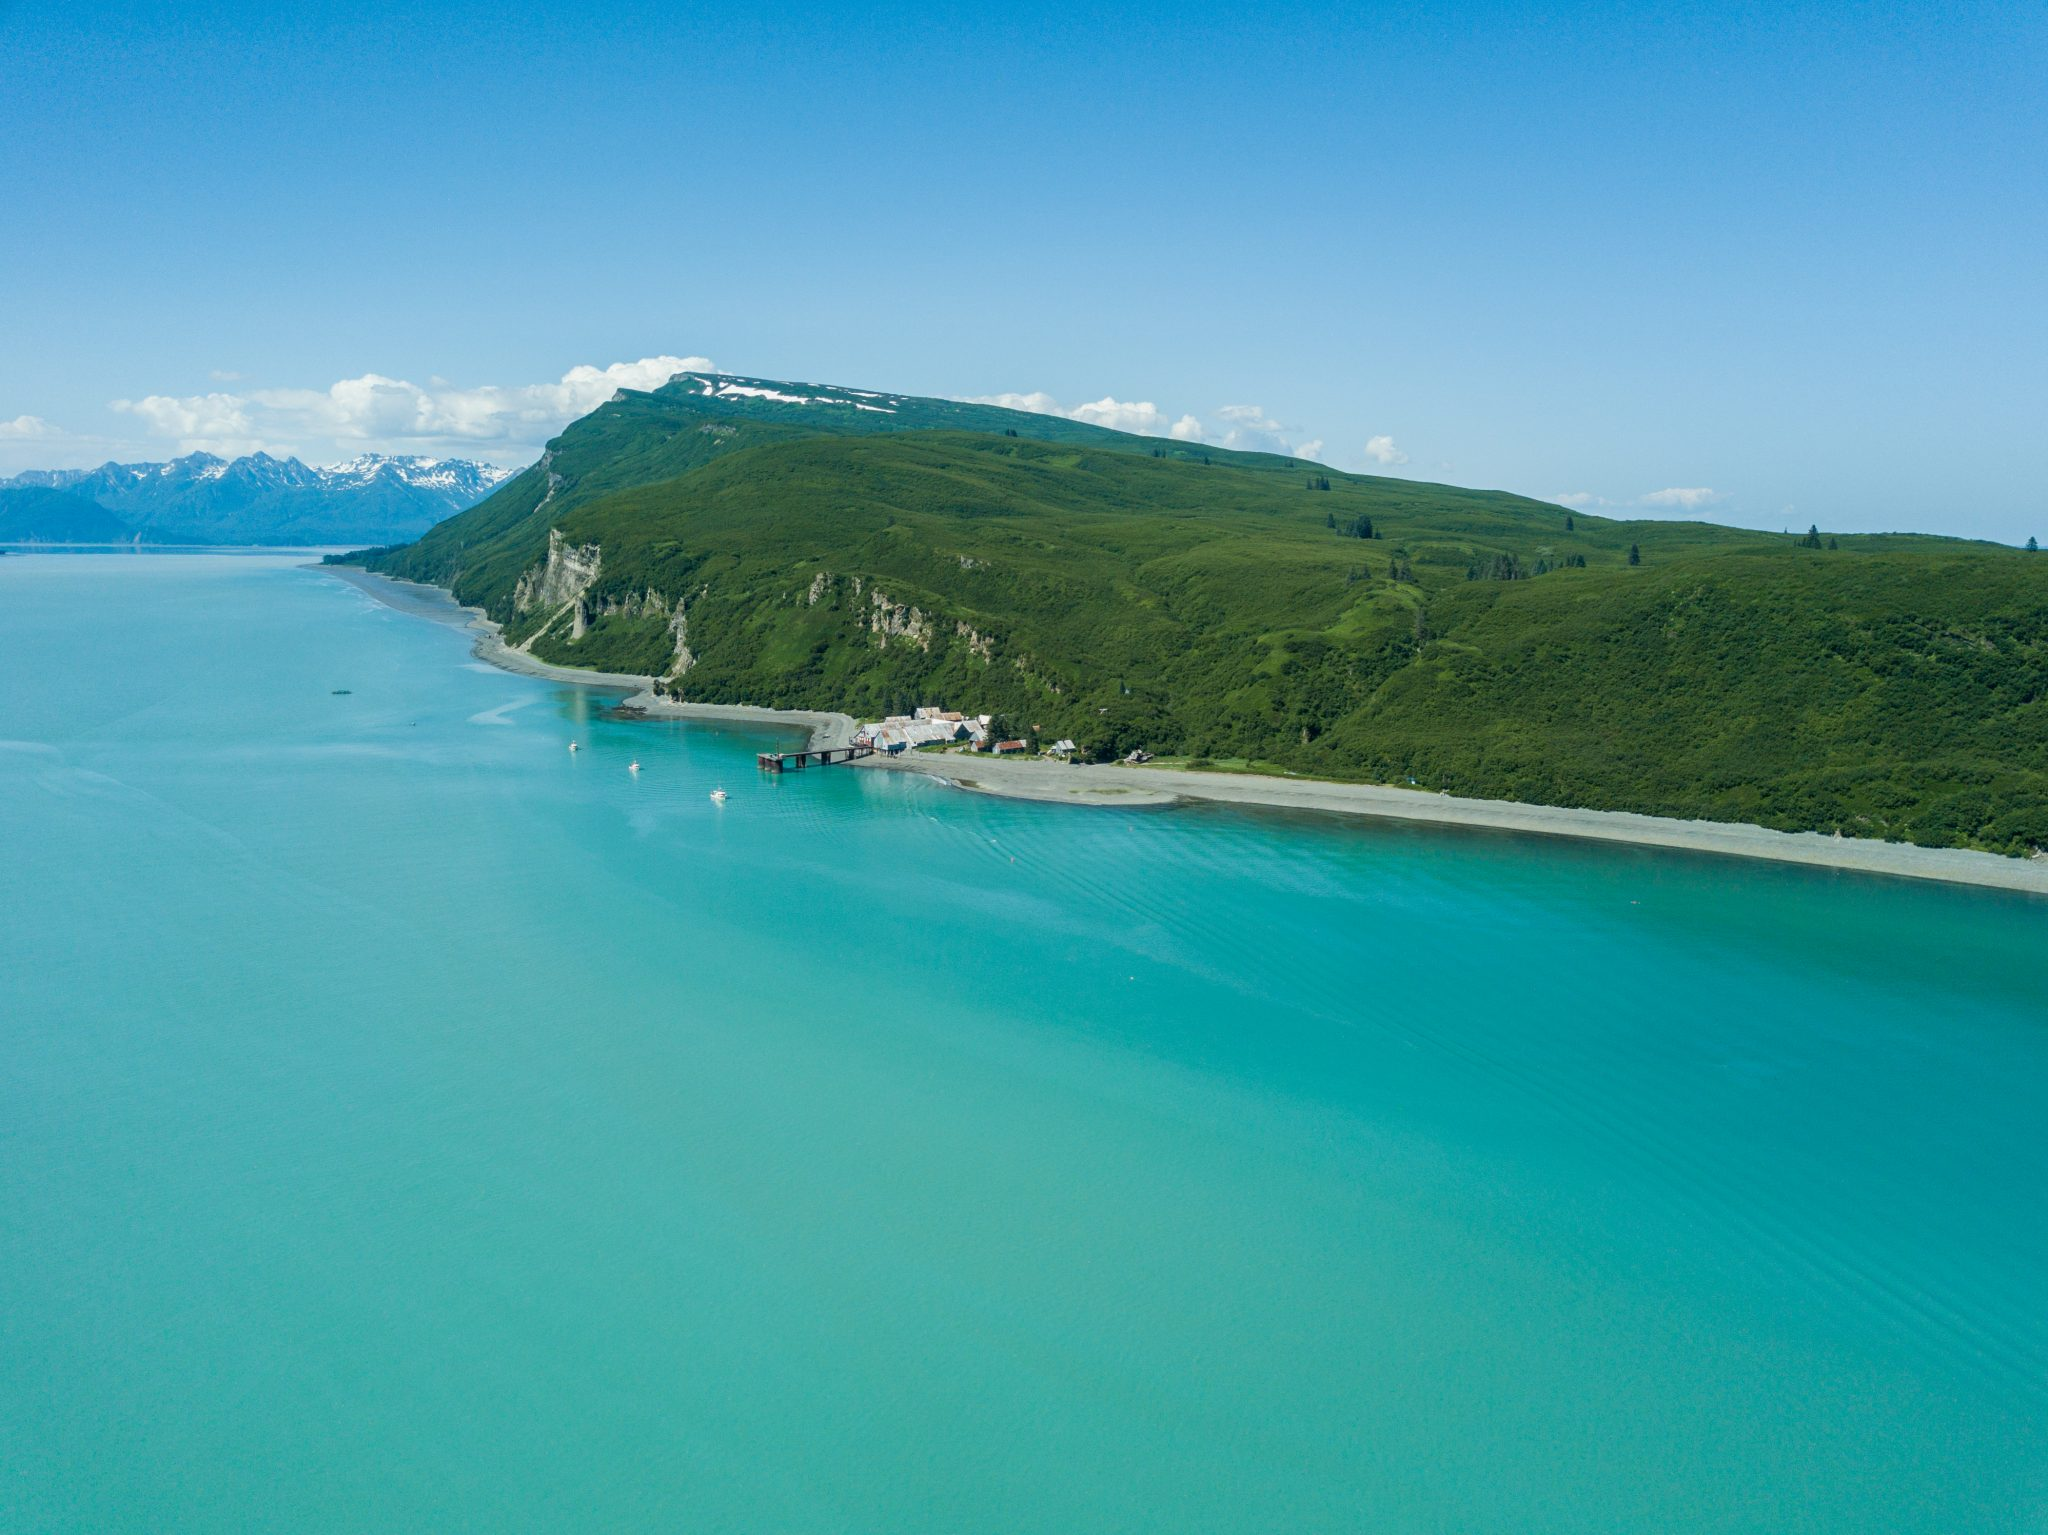 alaska-cannery-vacation-chisik-island-snug-harbor-DJI_0126